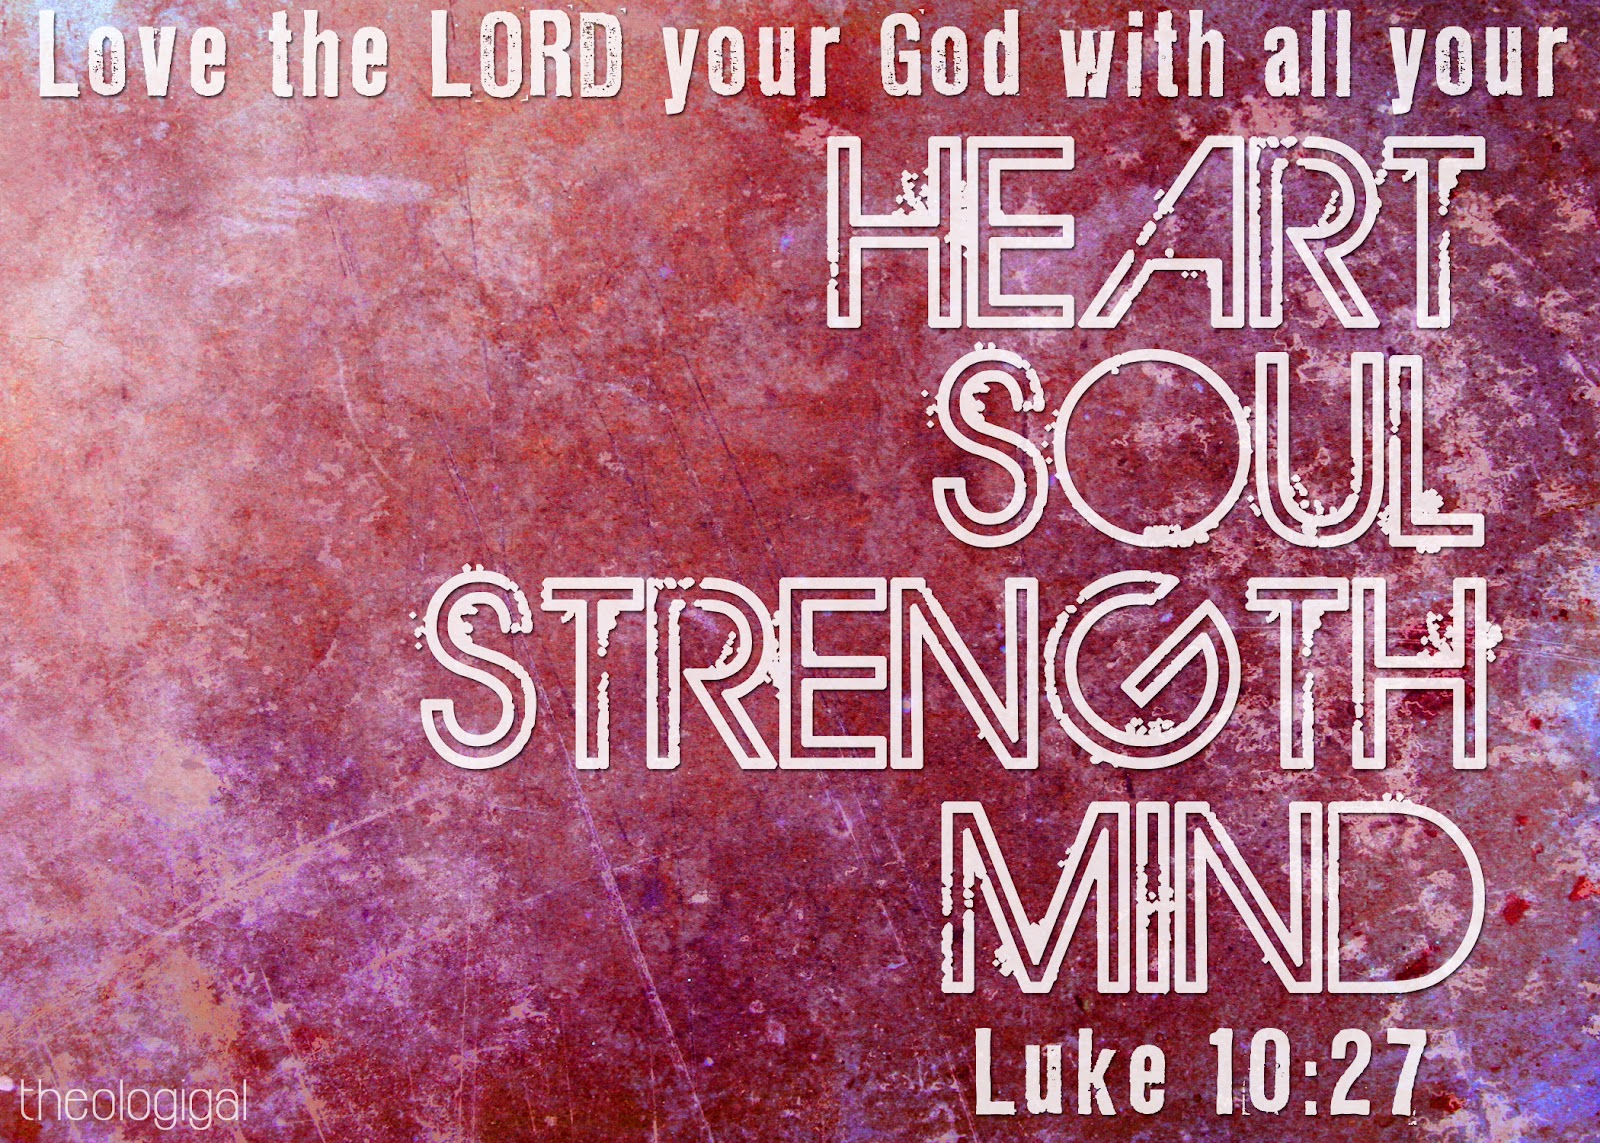 http://4.bp.blogspot.com/-DFp5e7eB0og/T91bjECK8sI/AAAAAAAAAGQ/gmK2NZCjstQ/s1600/bible-verse-luke-10-love-the-lord-with-all-your-heart-soul-strength-and-mind.jpg